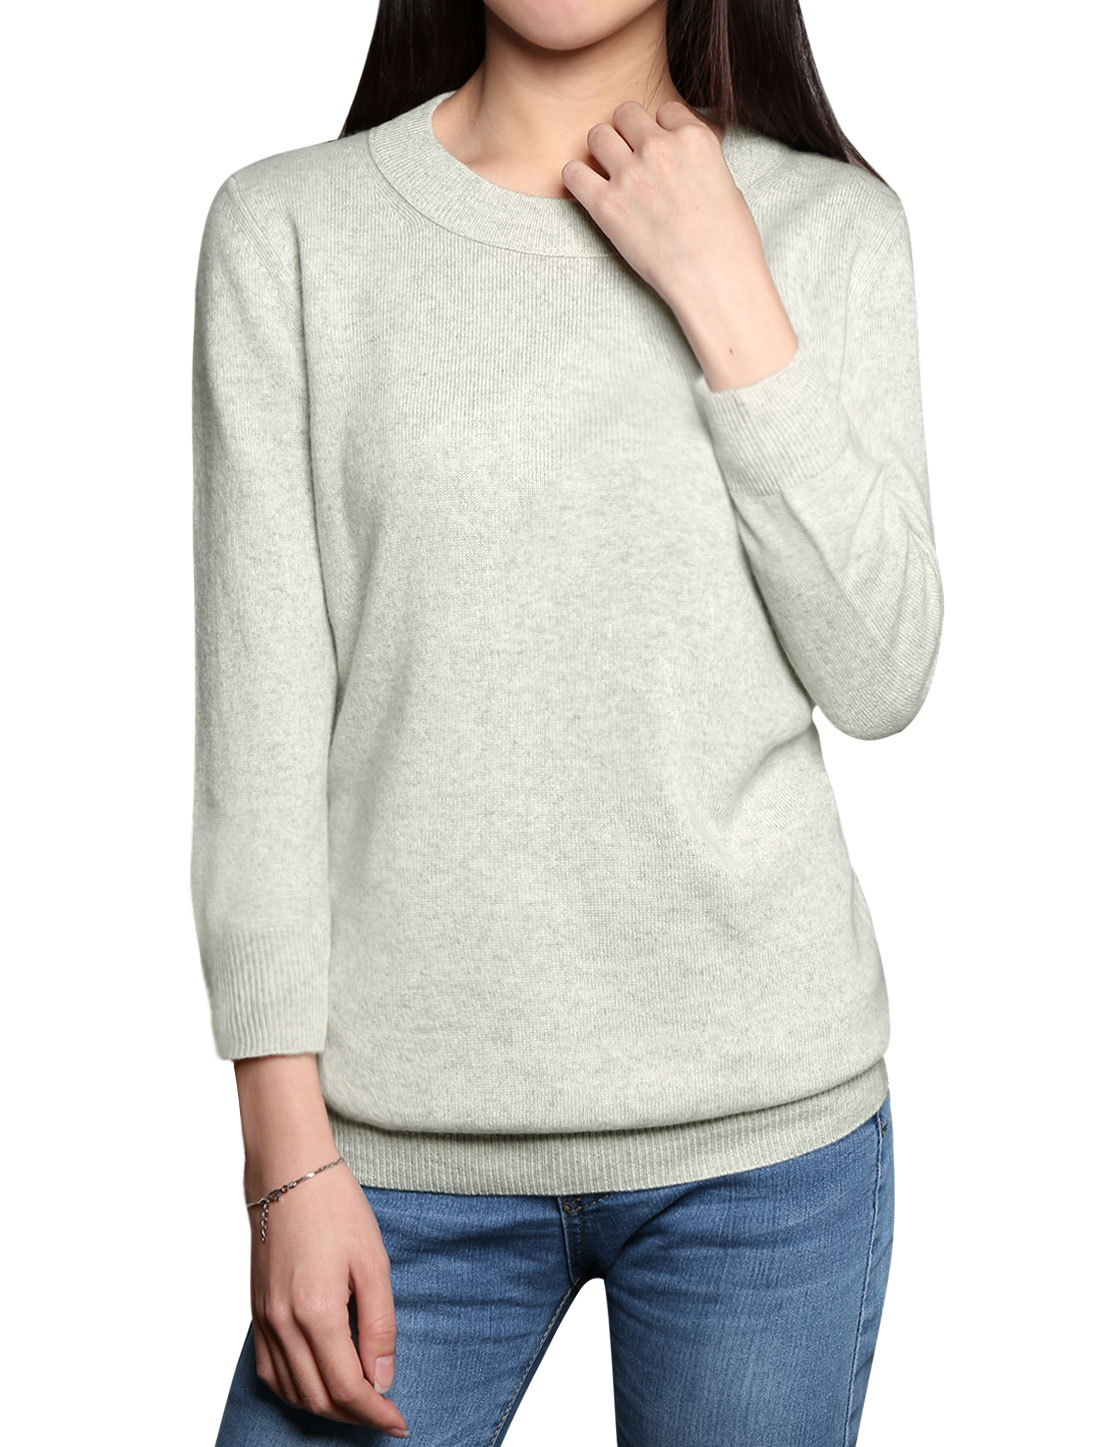 Women Crew Neck 3/4 Sleeves Cashmere Jumper Gray L